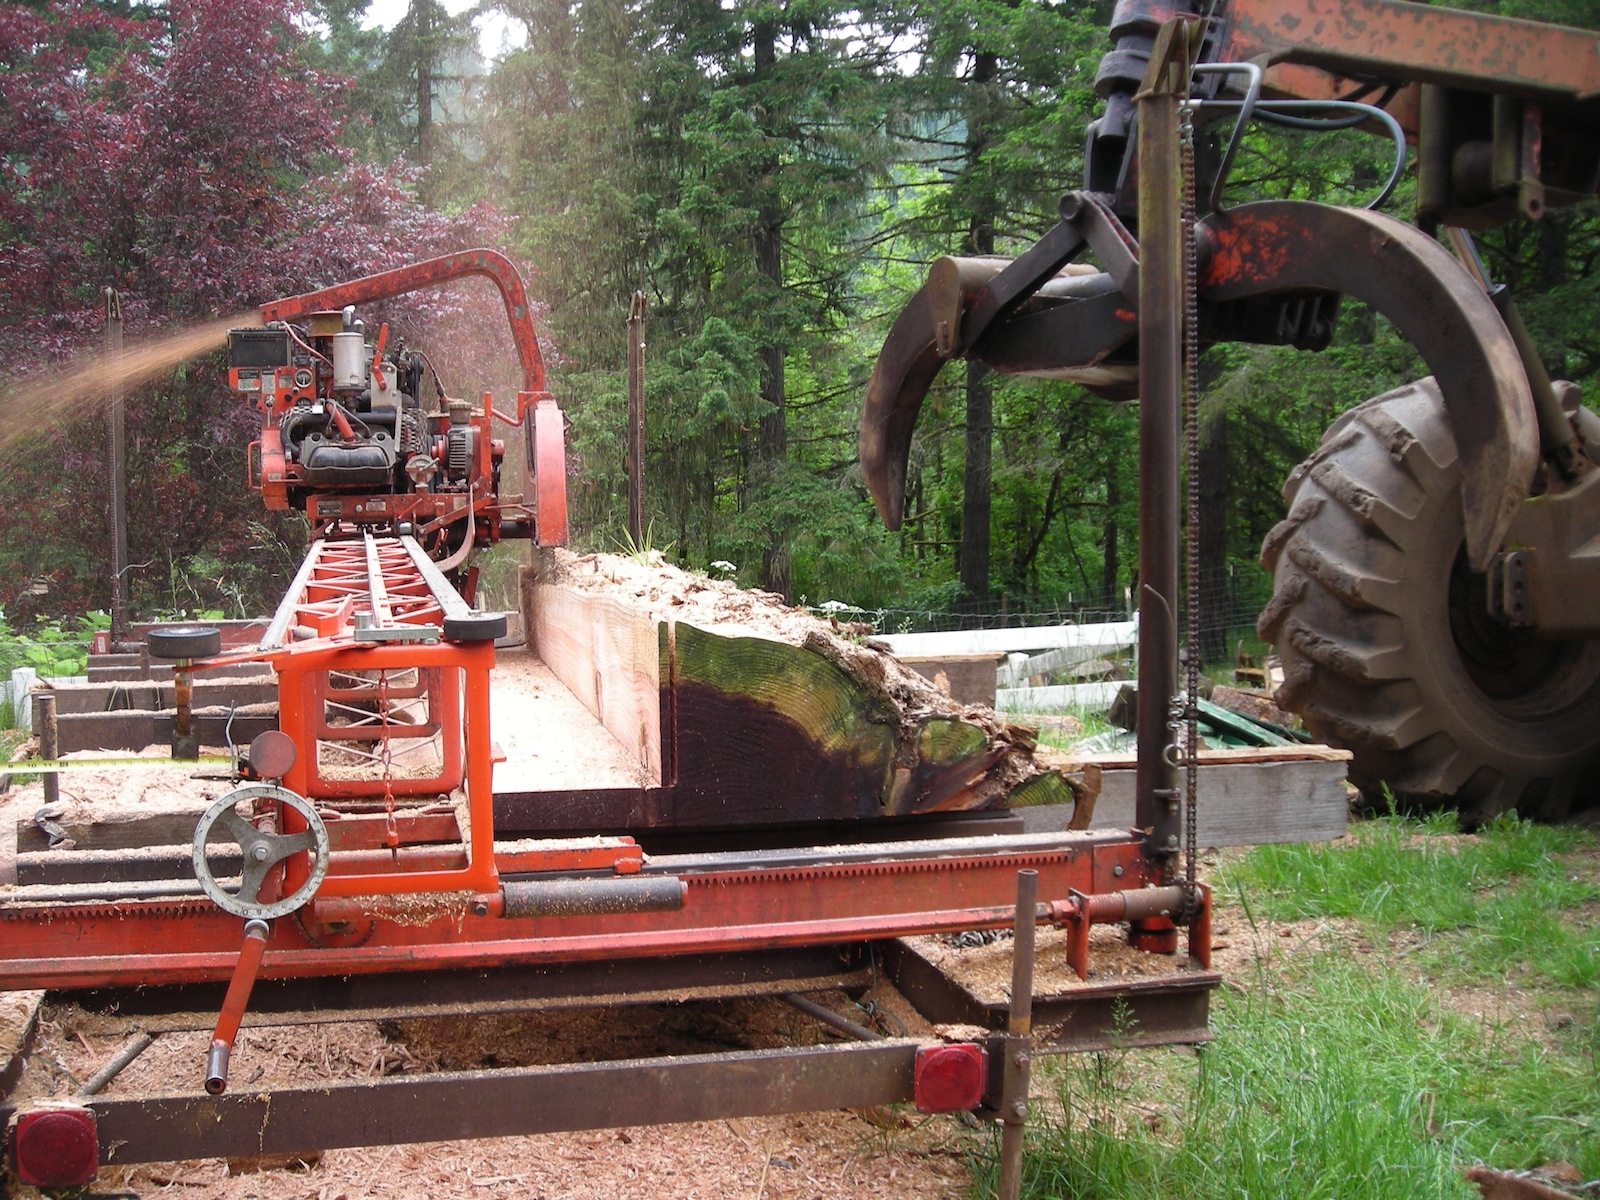 Cutting a 2-1/2 inch slab from the center of a redwood log while producing dimensional lumber